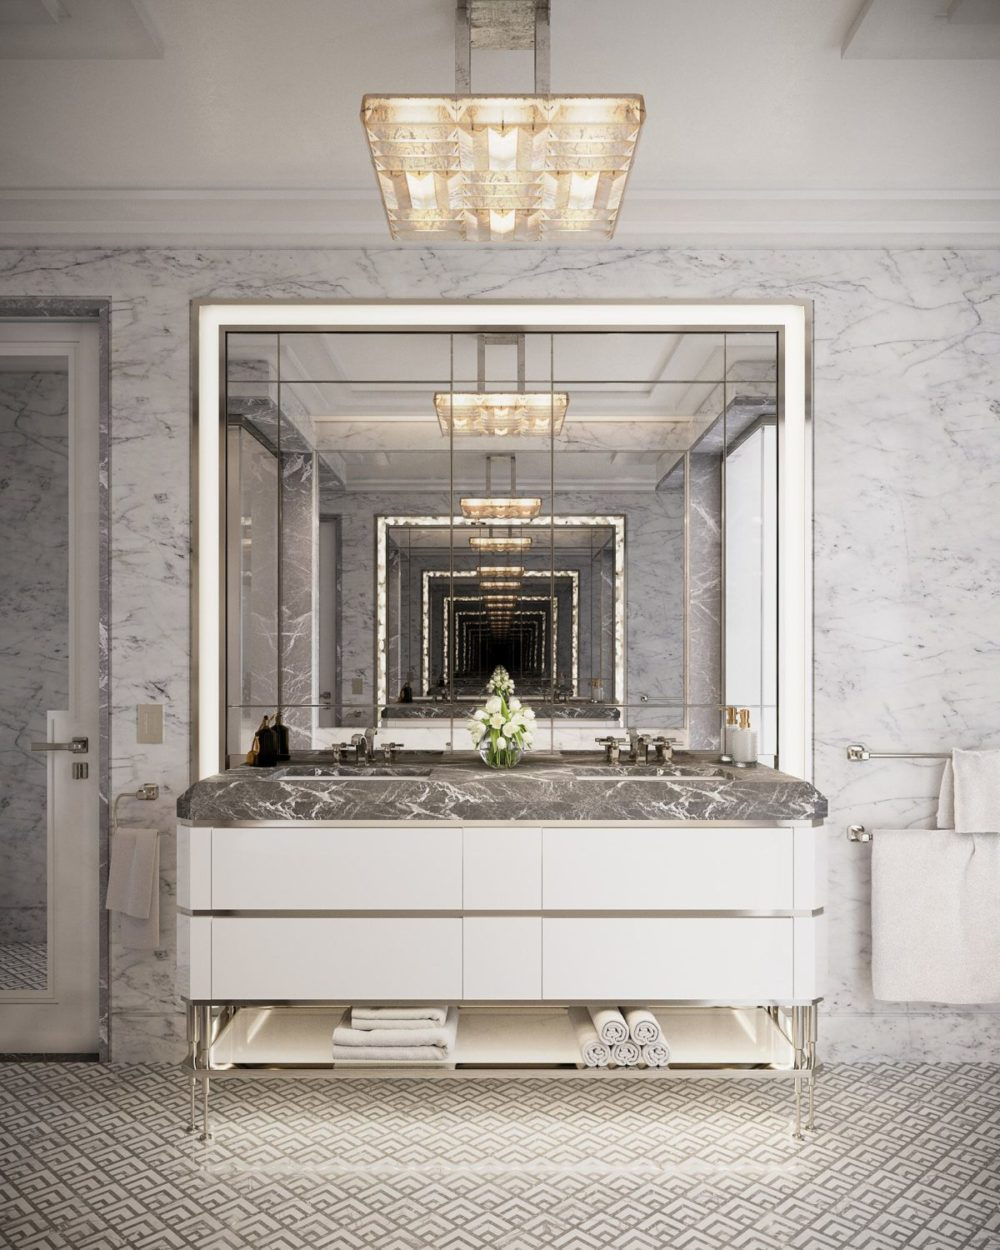 Waldorf Astoria Residences, a true palace in the city of New York